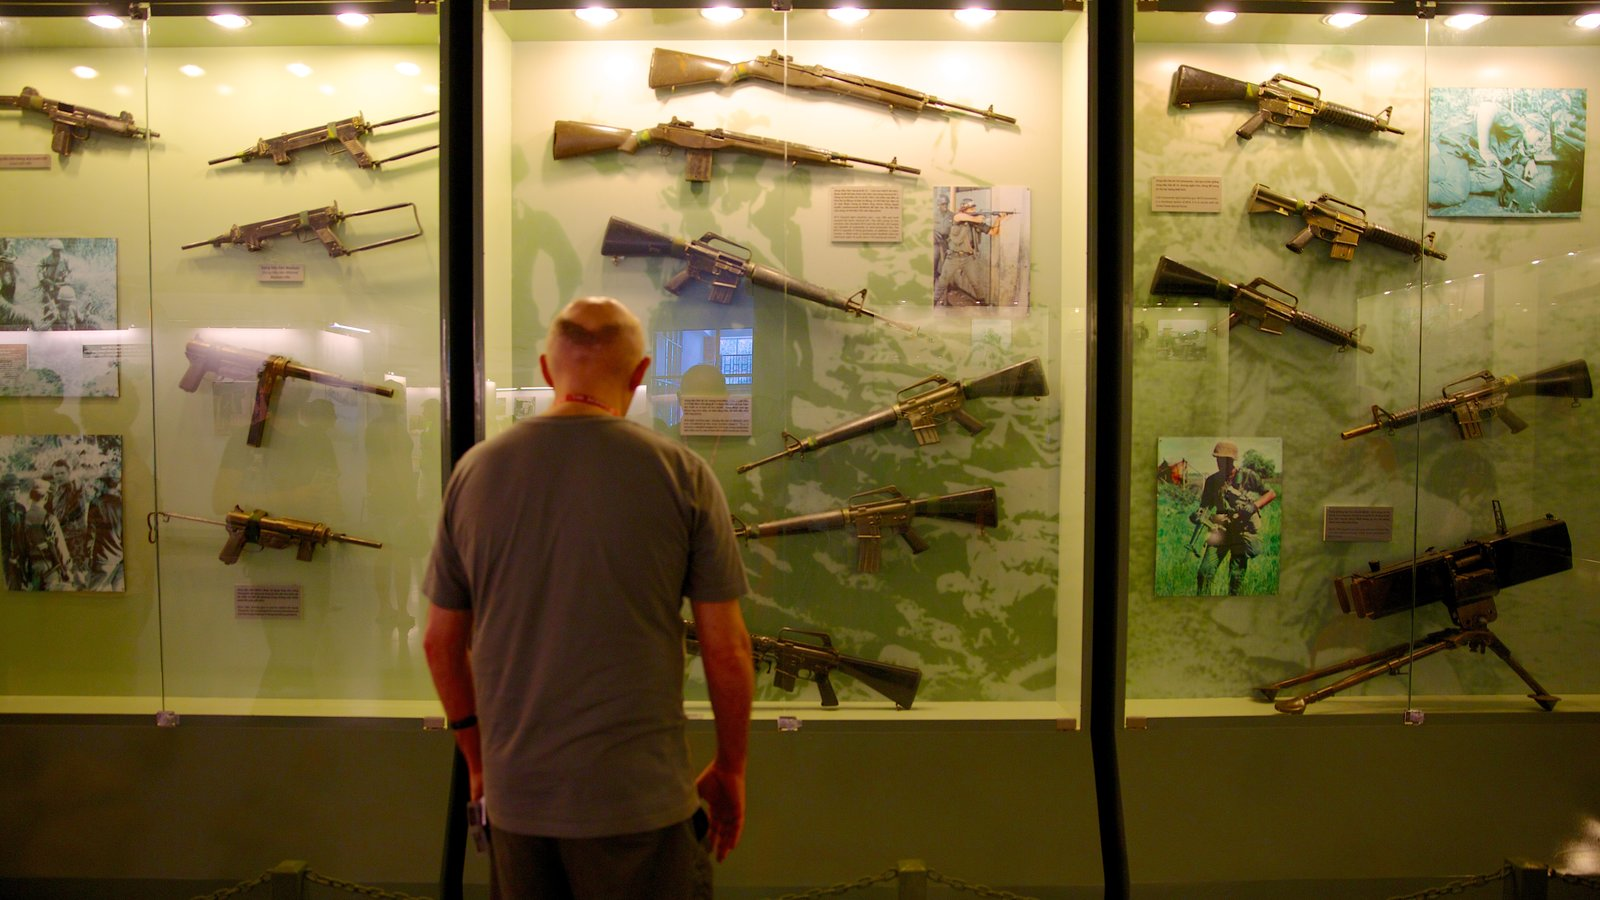 War Remnants Museum featuring military items and interior views as well as an individual male